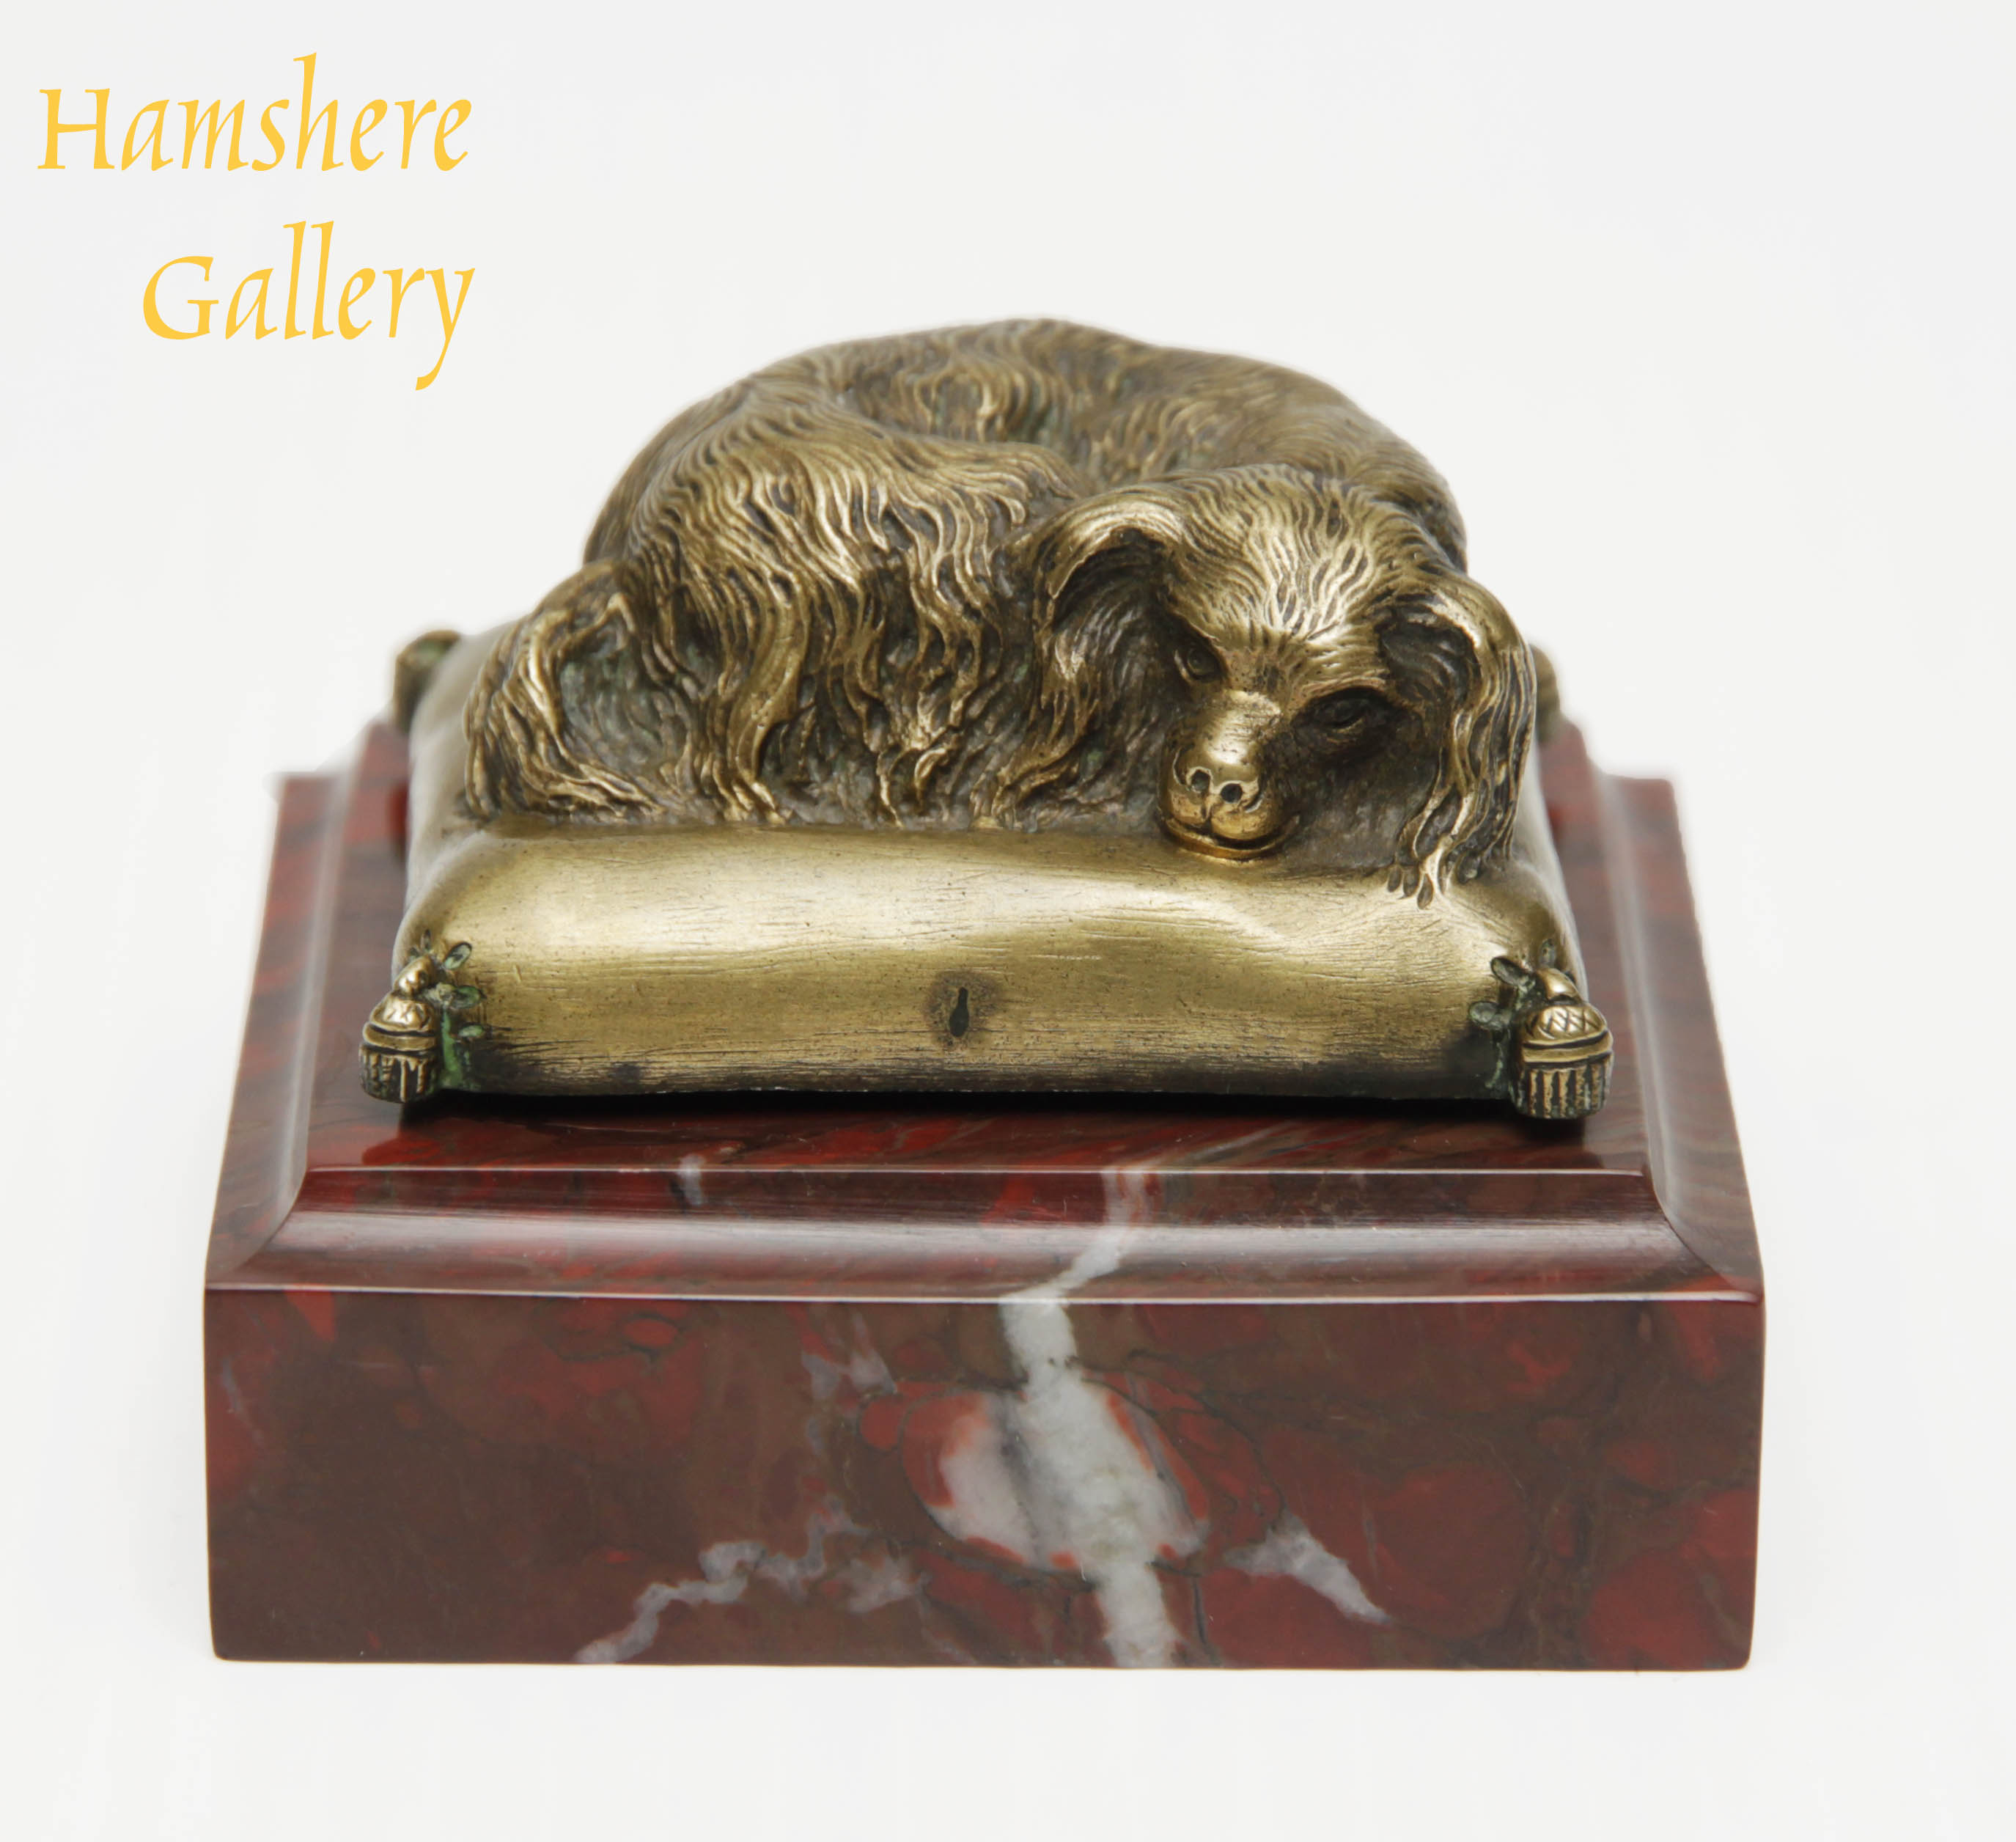 Click for larger image: A French, 19th century, Napoleon III, bronze presse-papier King Charles Cavalier Spaniel on a marble base - A French, 19th century, Napoleon III, bronze presse-papier King Charles Cavalier Spaniel on a marble base